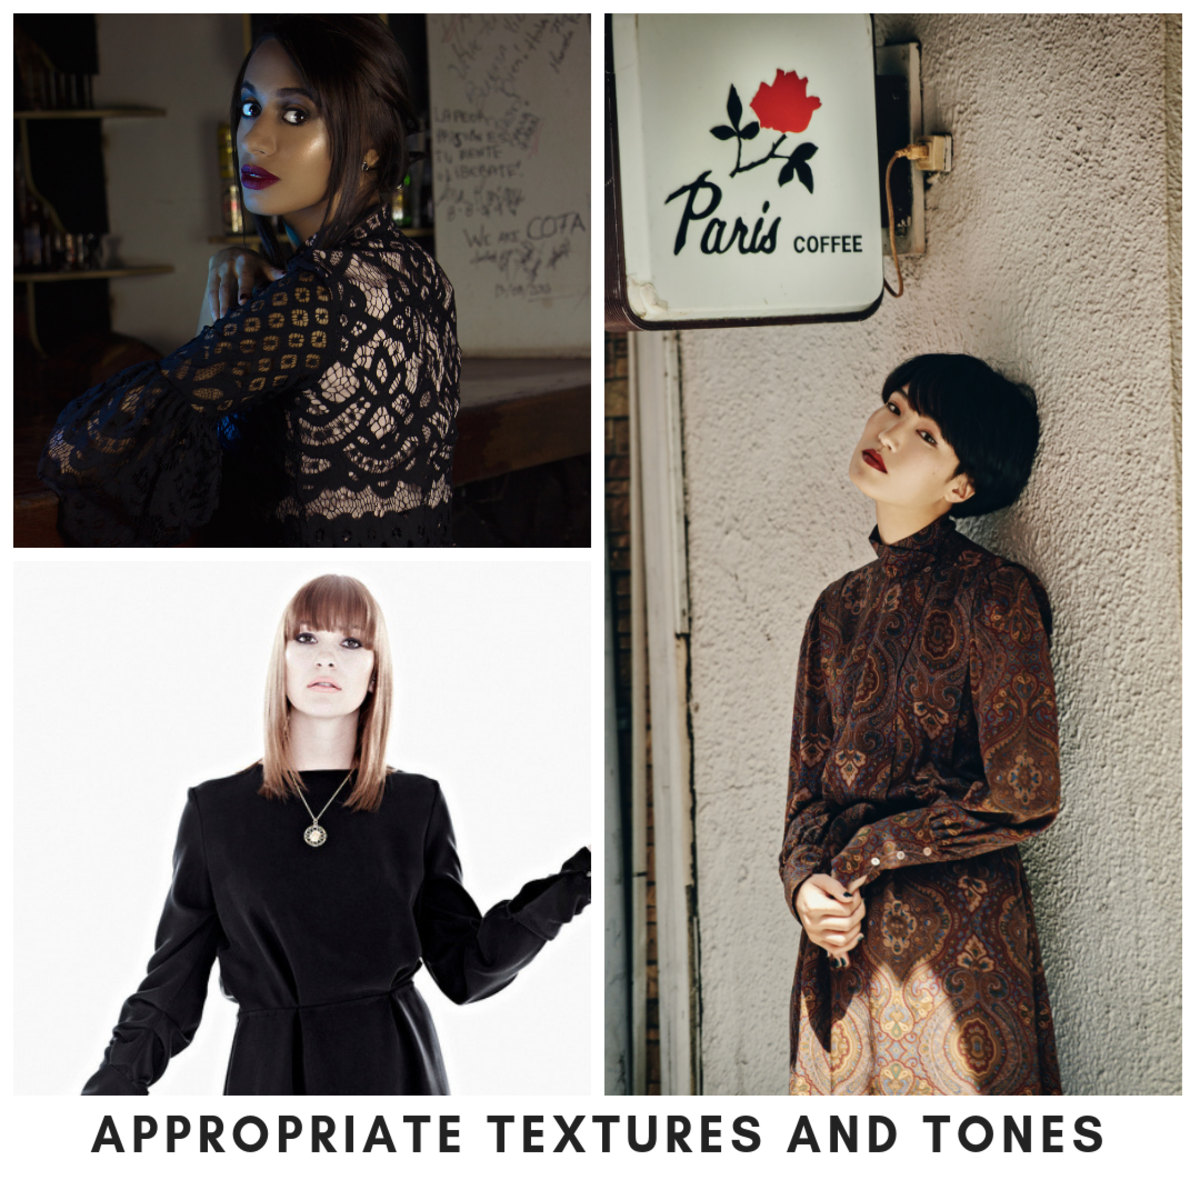 You can make texture, patterns, and lace work, just do so tastefully.